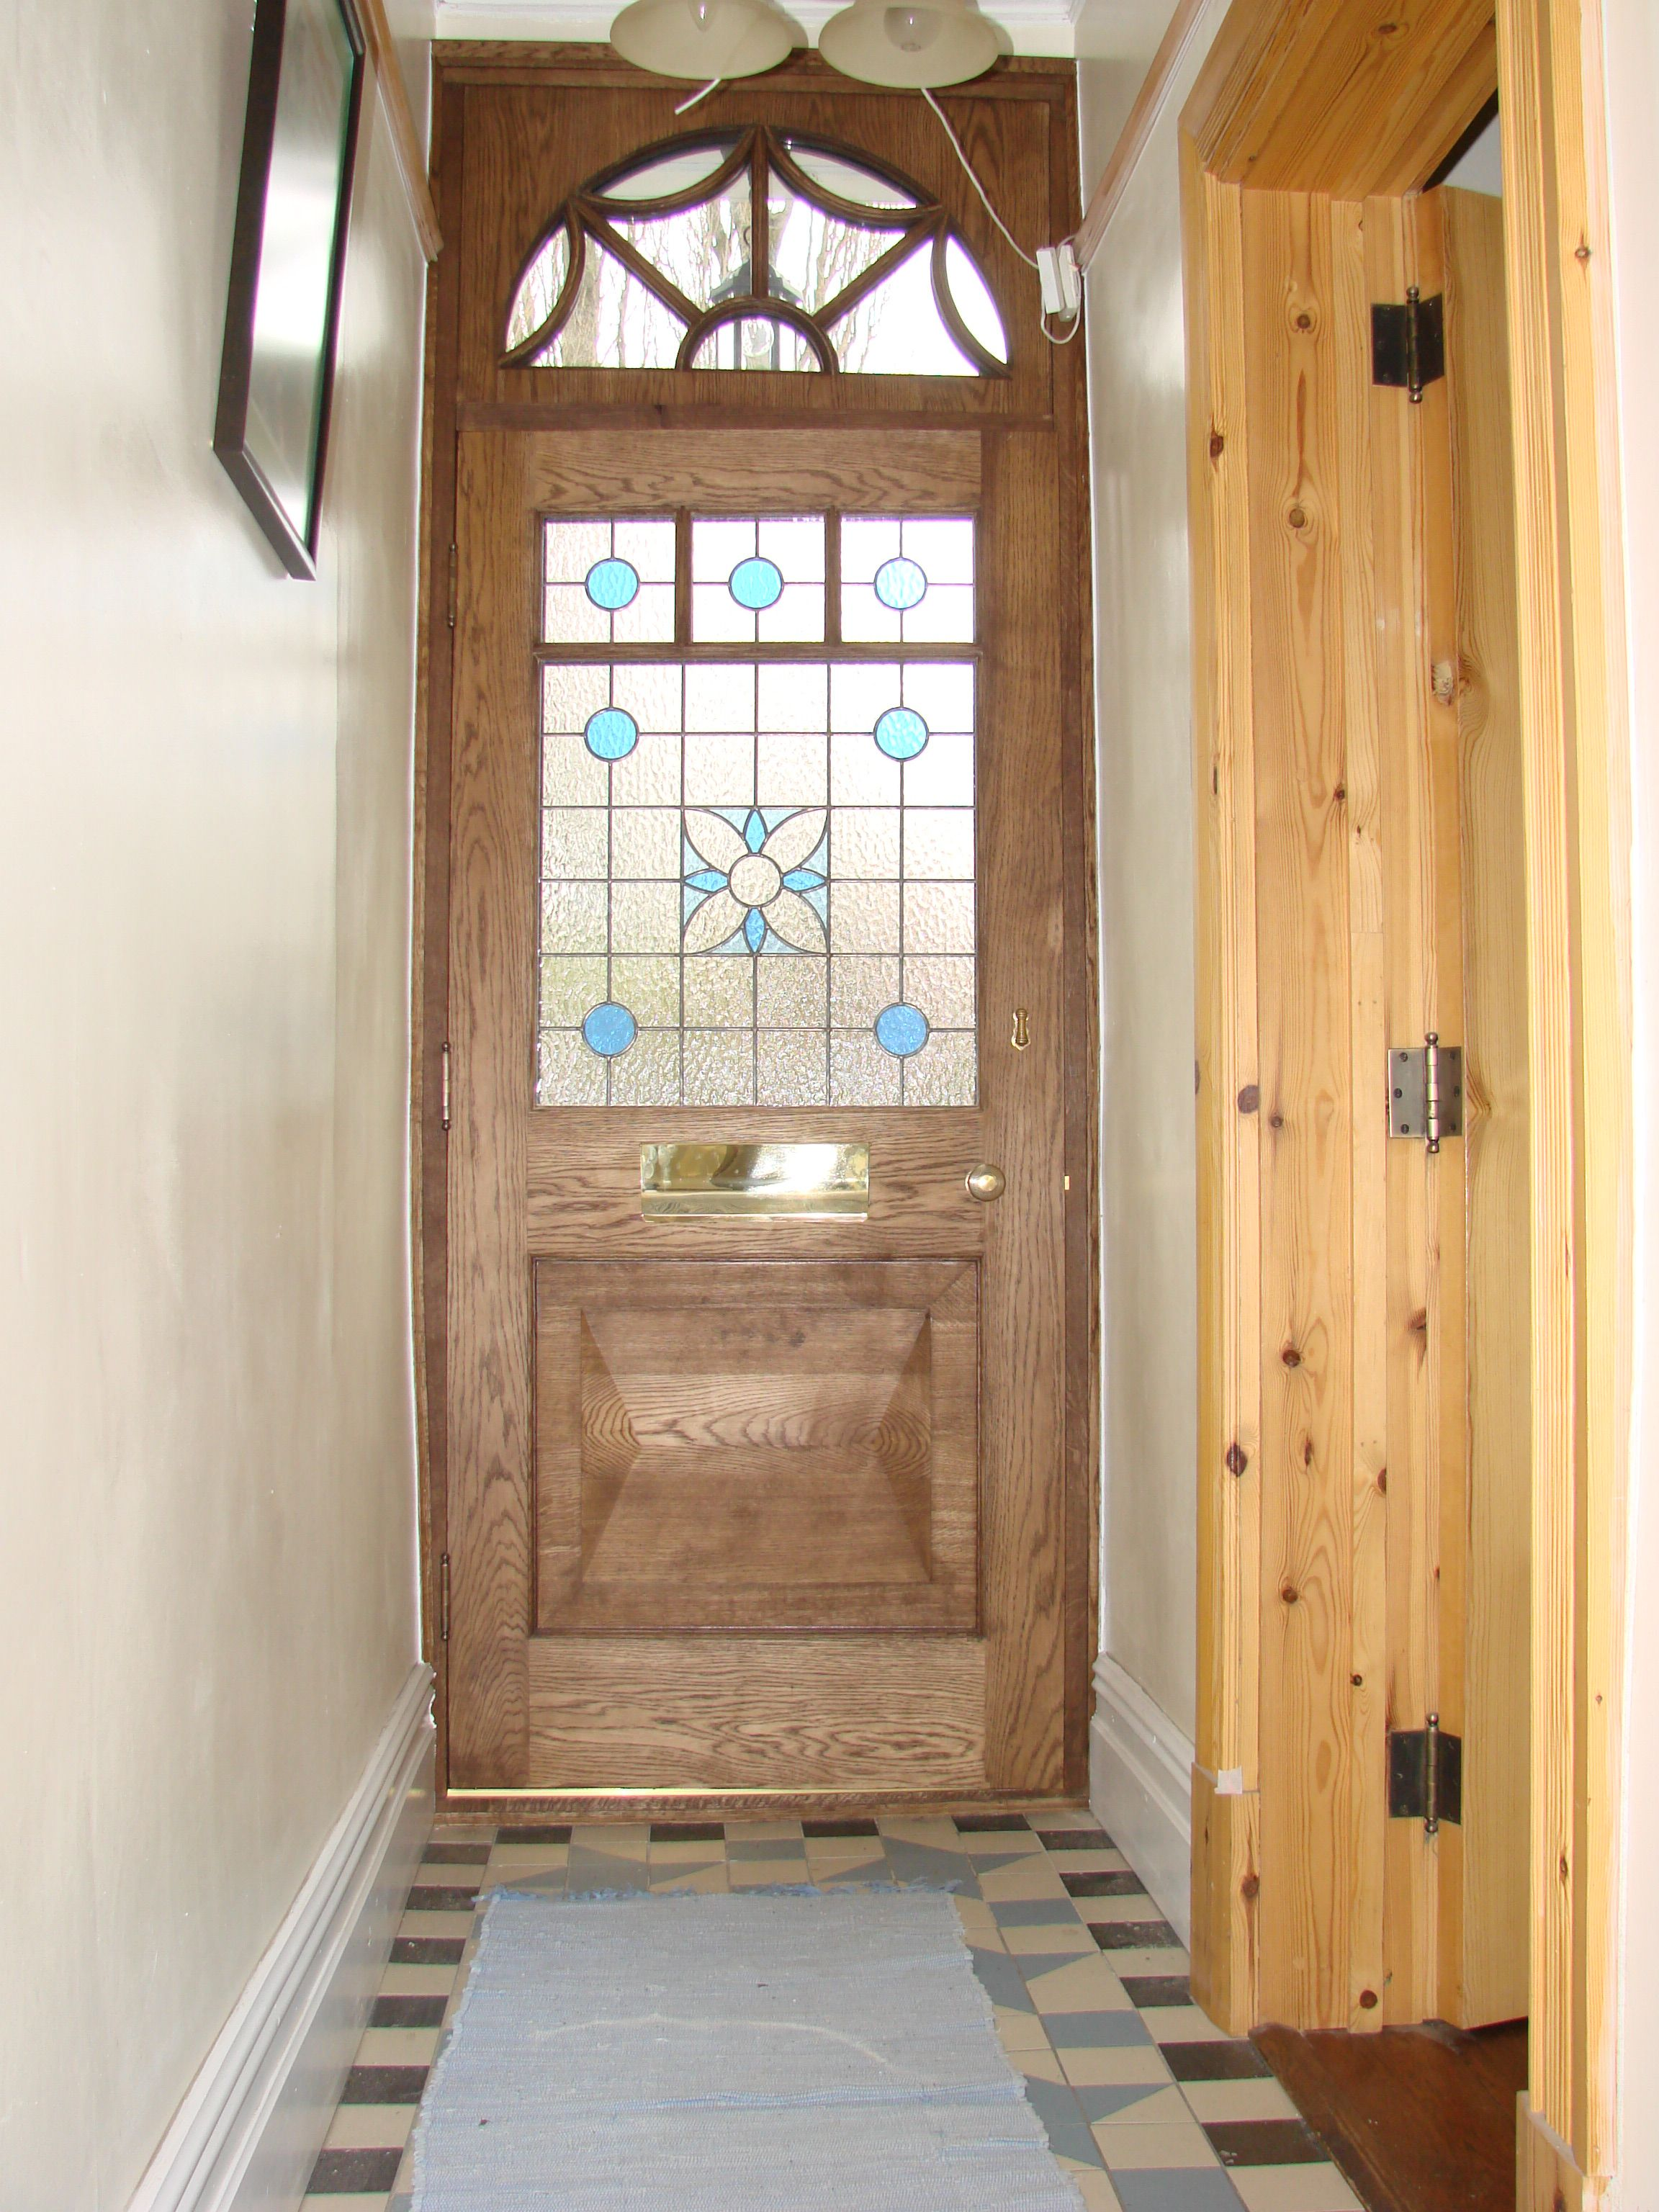 Interior and Exterior Architectural Bespoke Doors Made by Period Mouldings .periodmouldings.co. & Interior and Exterior Architectural Bespoke Doors Made by Period ... pezcame.com